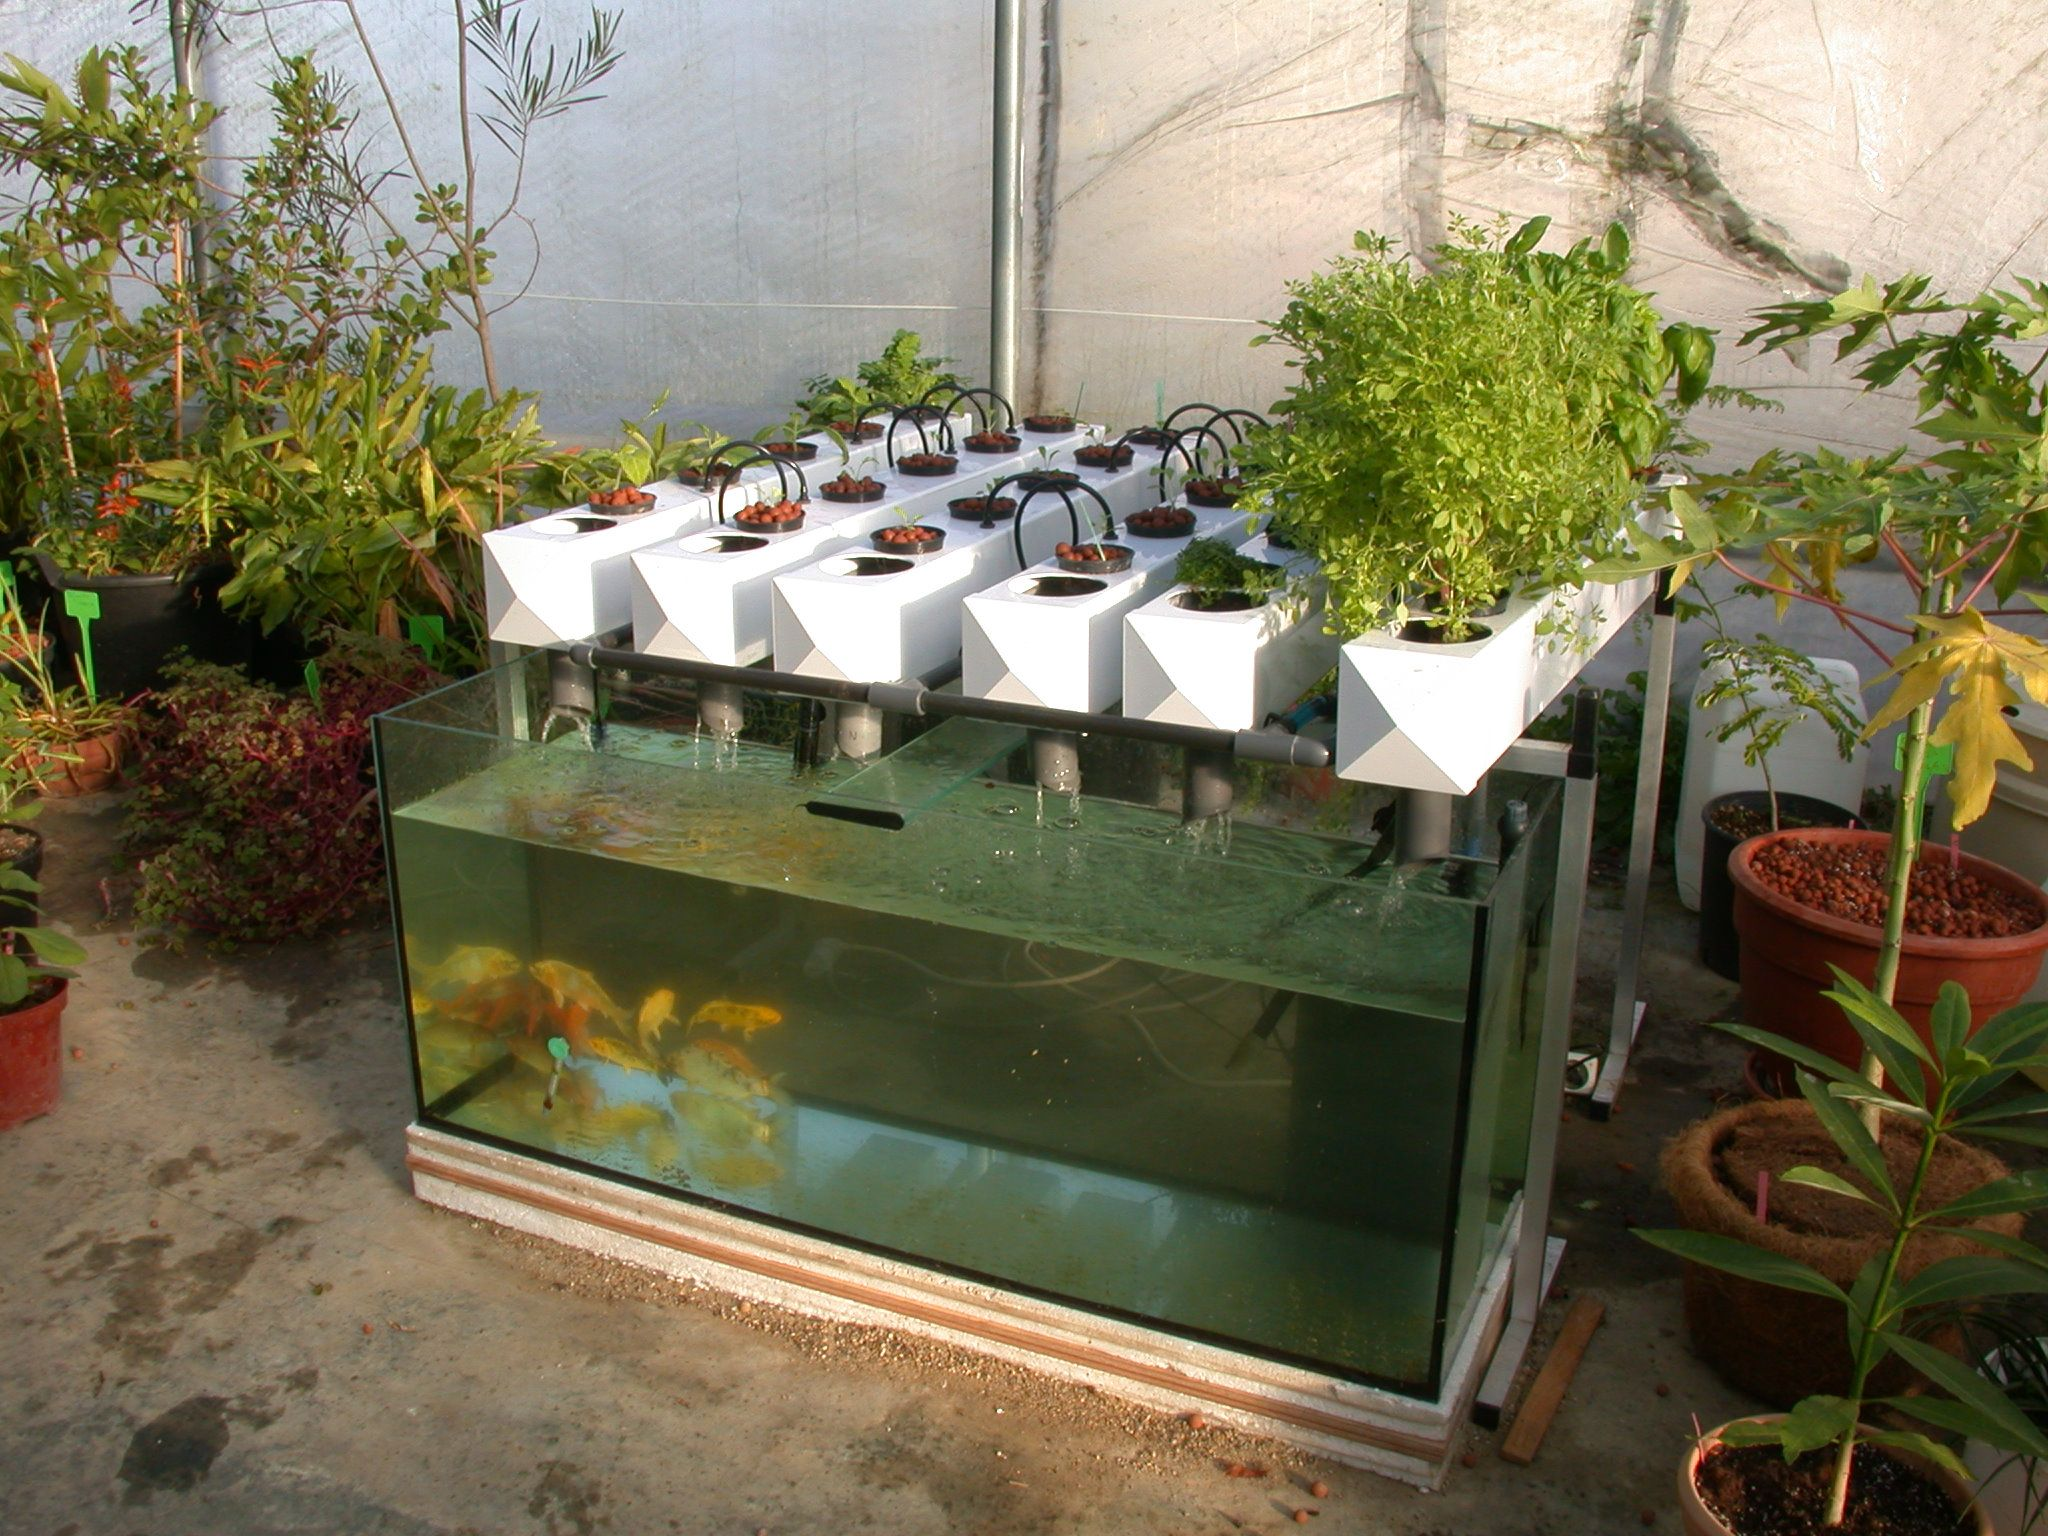 Aquaponics general hydroponics europe ghe official for Fish tank hydroponic garden